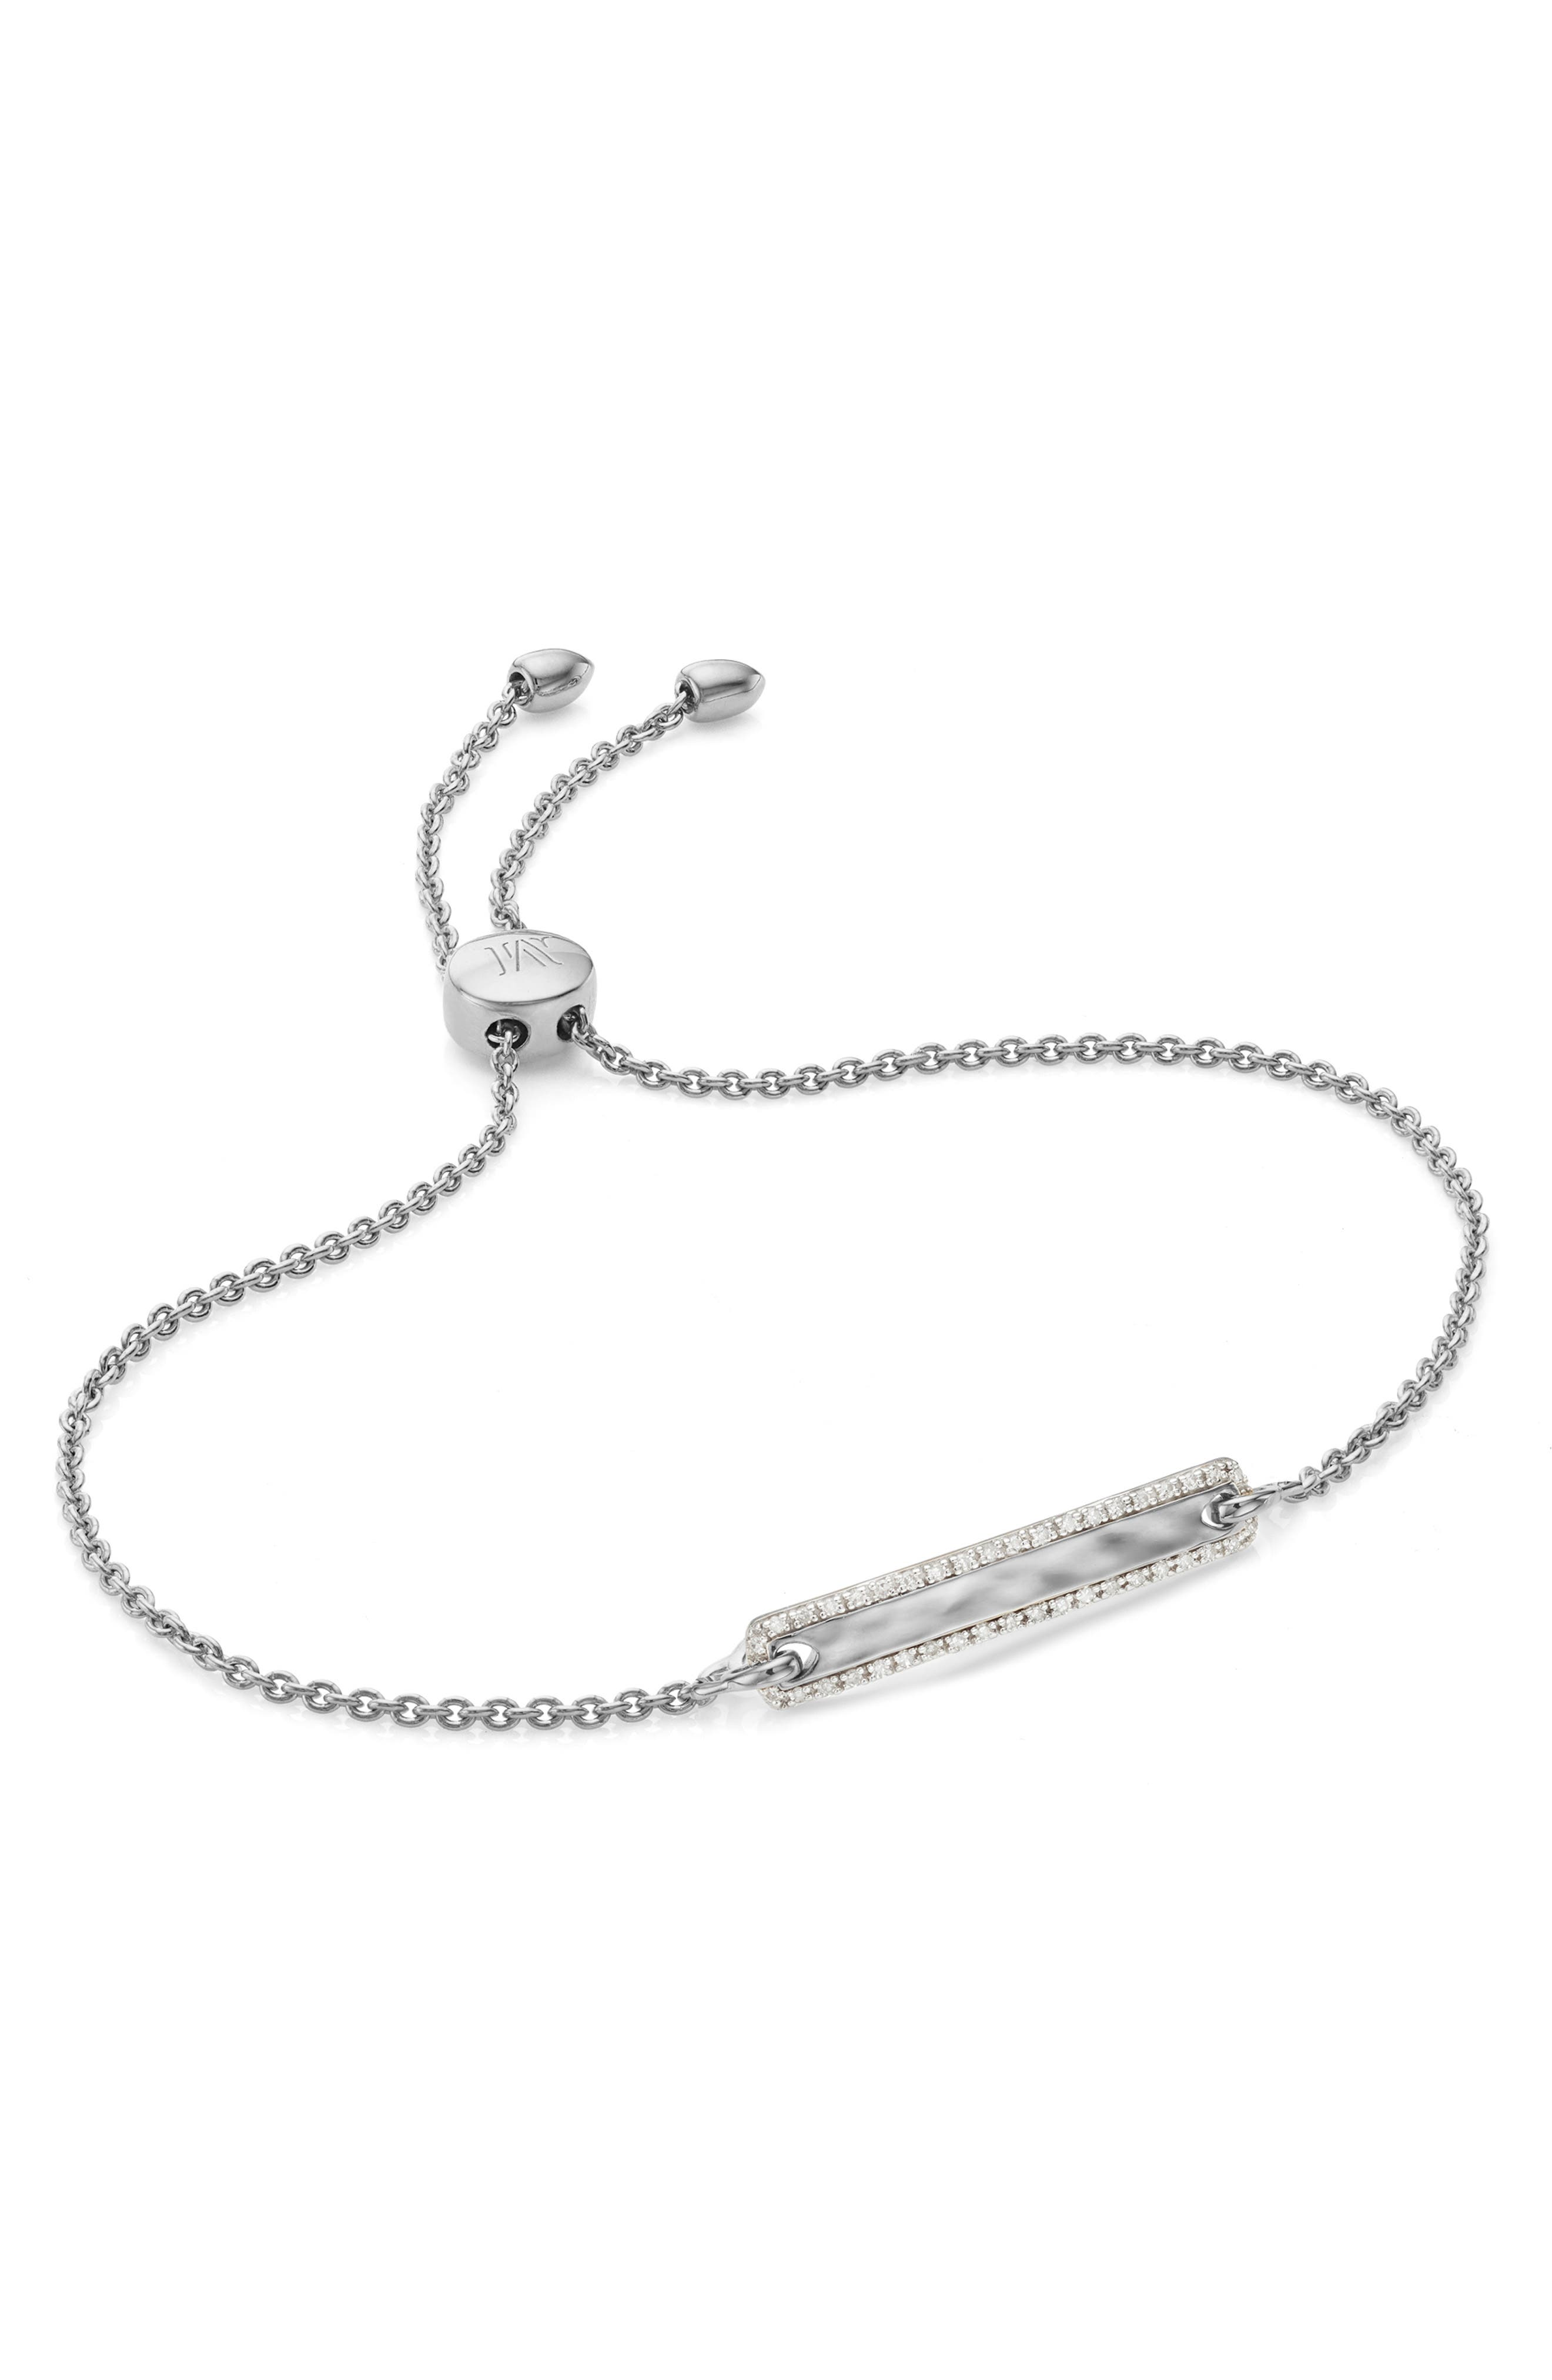 A slider bracelet makes a special gift with a slender, softly hammered metal bar, framed with diamond pave for a look inspired by the vibrancy of Havana, Cuba. Style Name: Monica Vinader Havana Bar Diamond Pave Friendship Chain Bracelet. Style Number: 6047149. Available in stores.